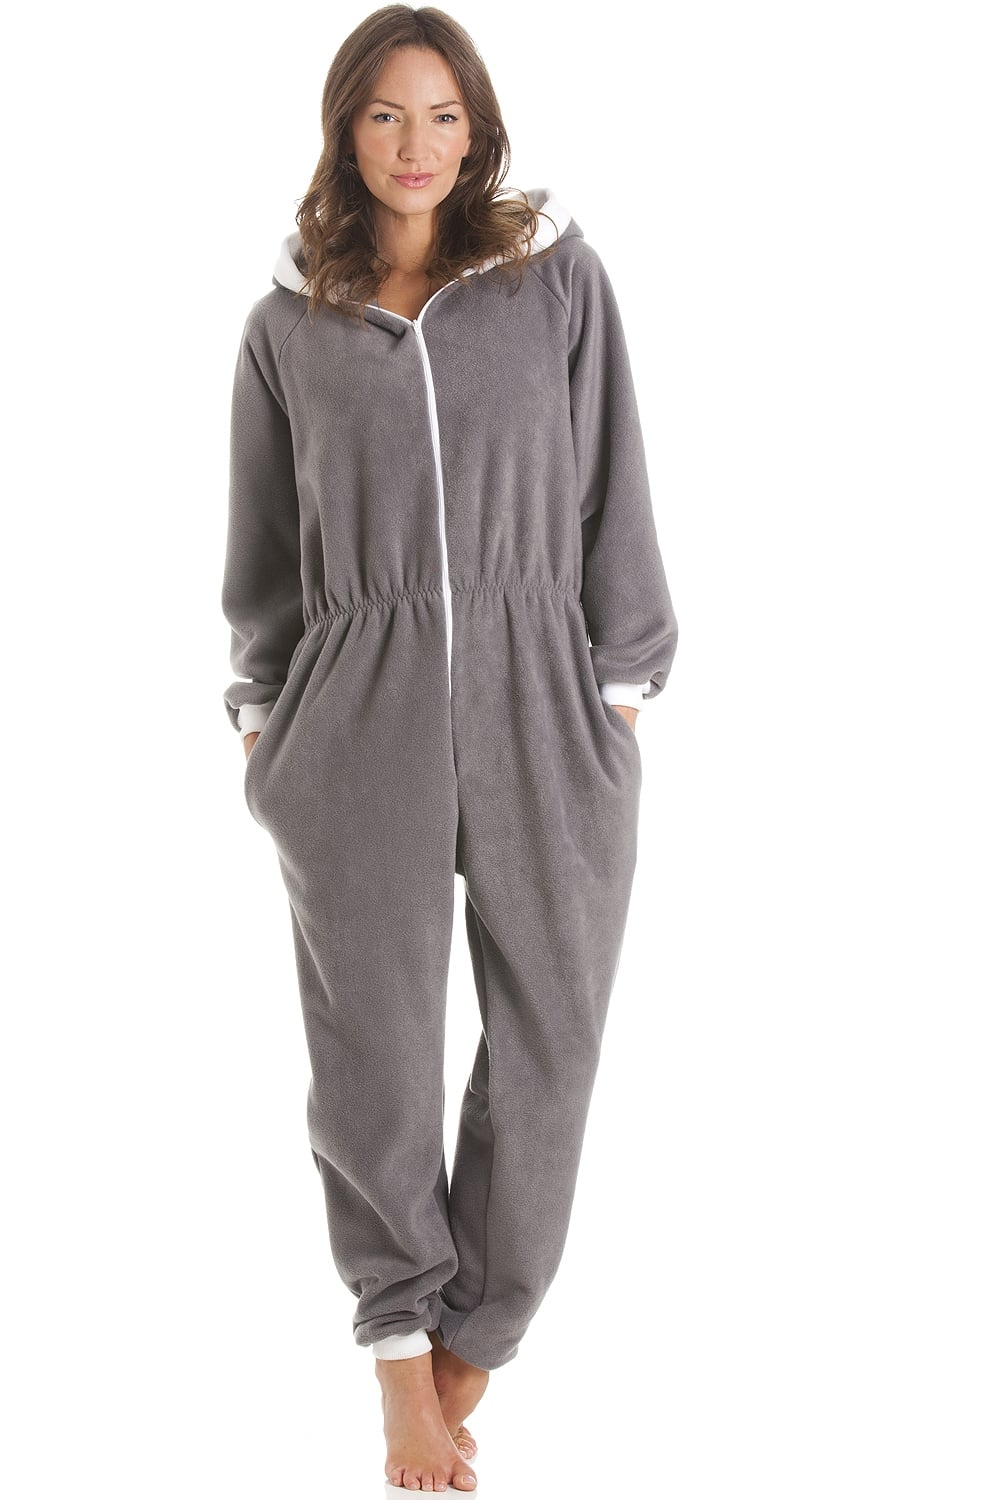 Selling nightwear since , make bedtime fun with our huge range of pyjamas and nightwear for kids and adults of all ages.